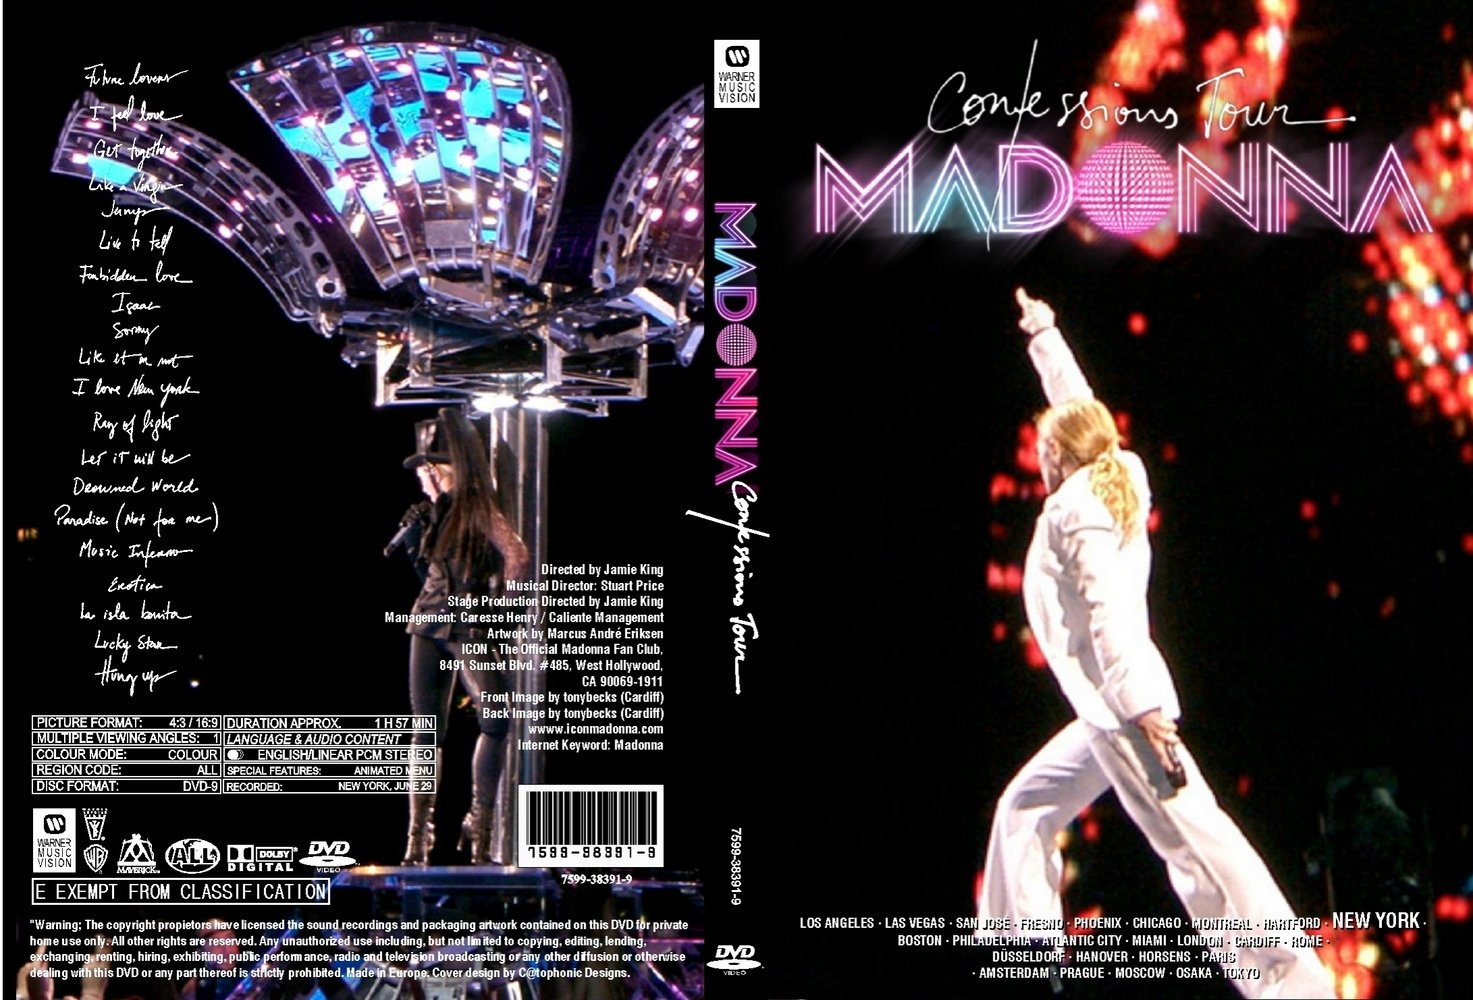 http://4.bp.blogspot.com/-oieR0mxaOSc/UHQ9qnSBClI/AAAAAAAAEz4/CwGlgsXlxLY/s1600/Madonna+The+Confessions+Tour.jpg